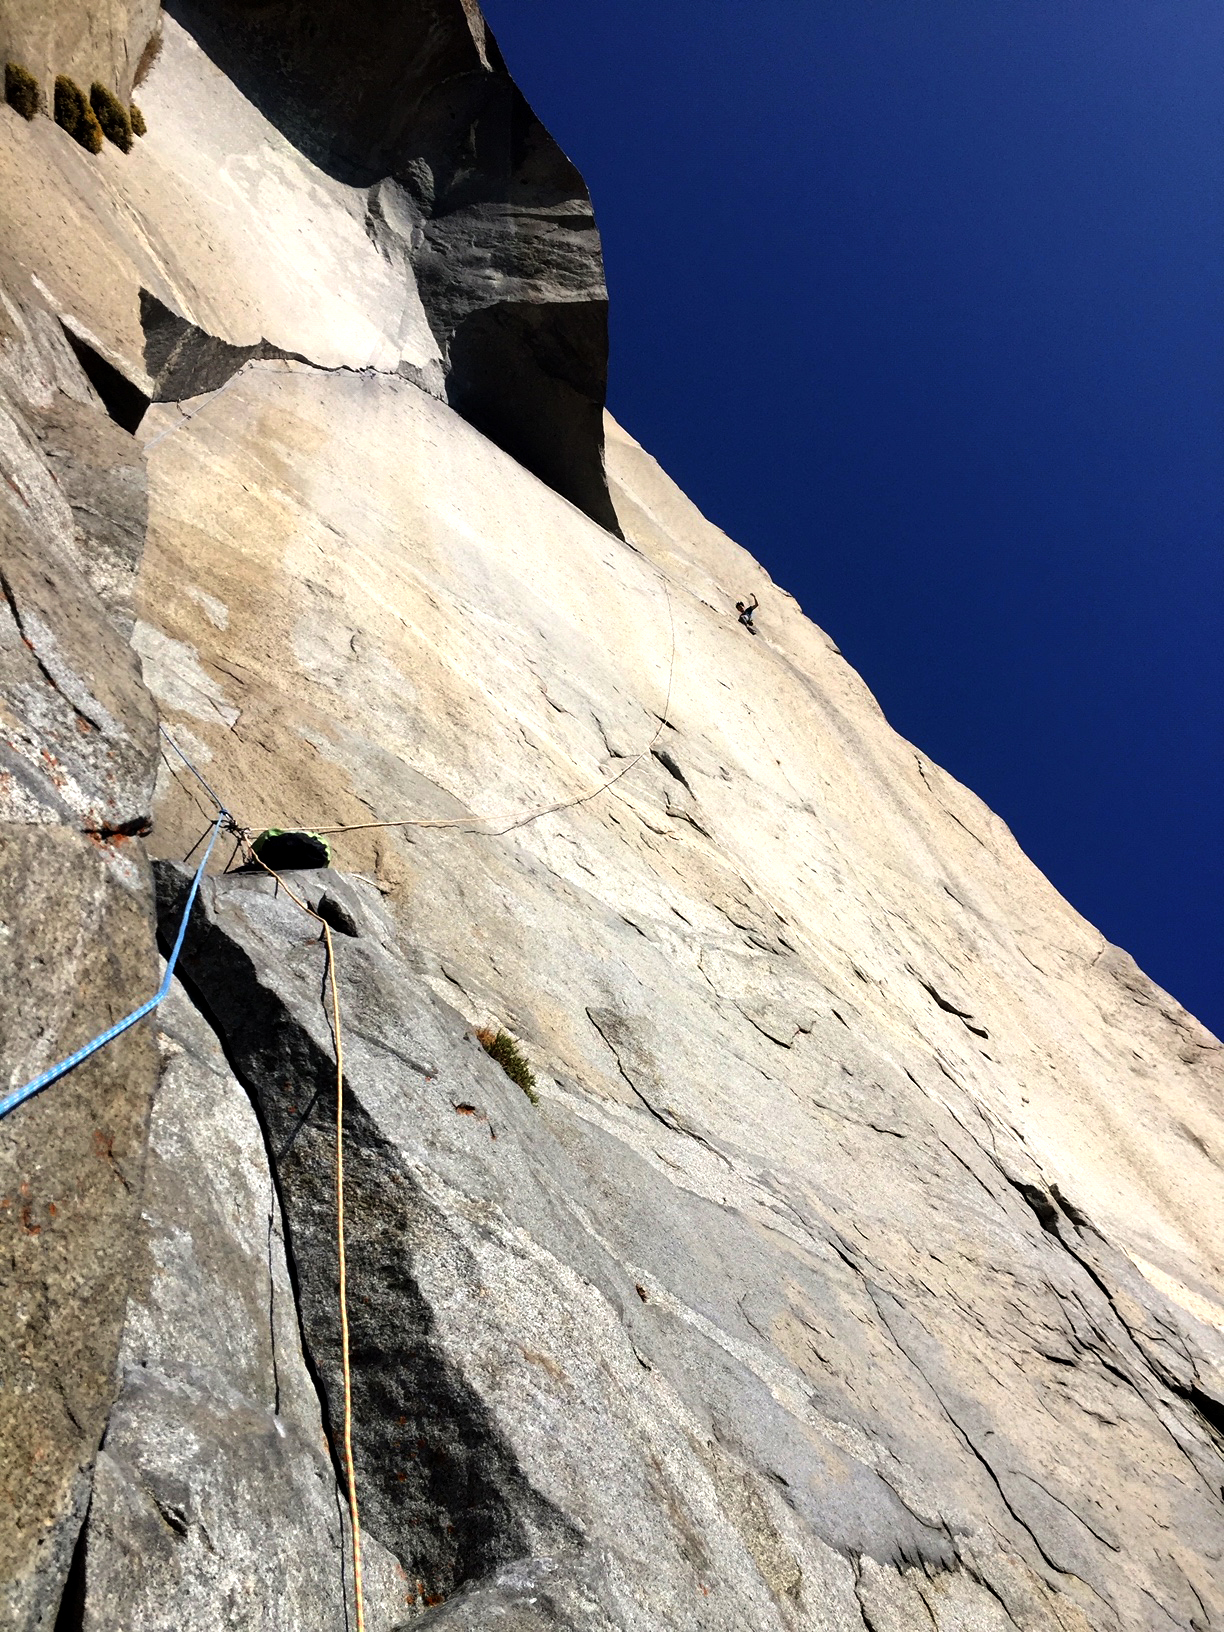 Kurakami at the top of the Great Roof pitch during his rope-solo ascent. [Photo] Keita Kurakami collection